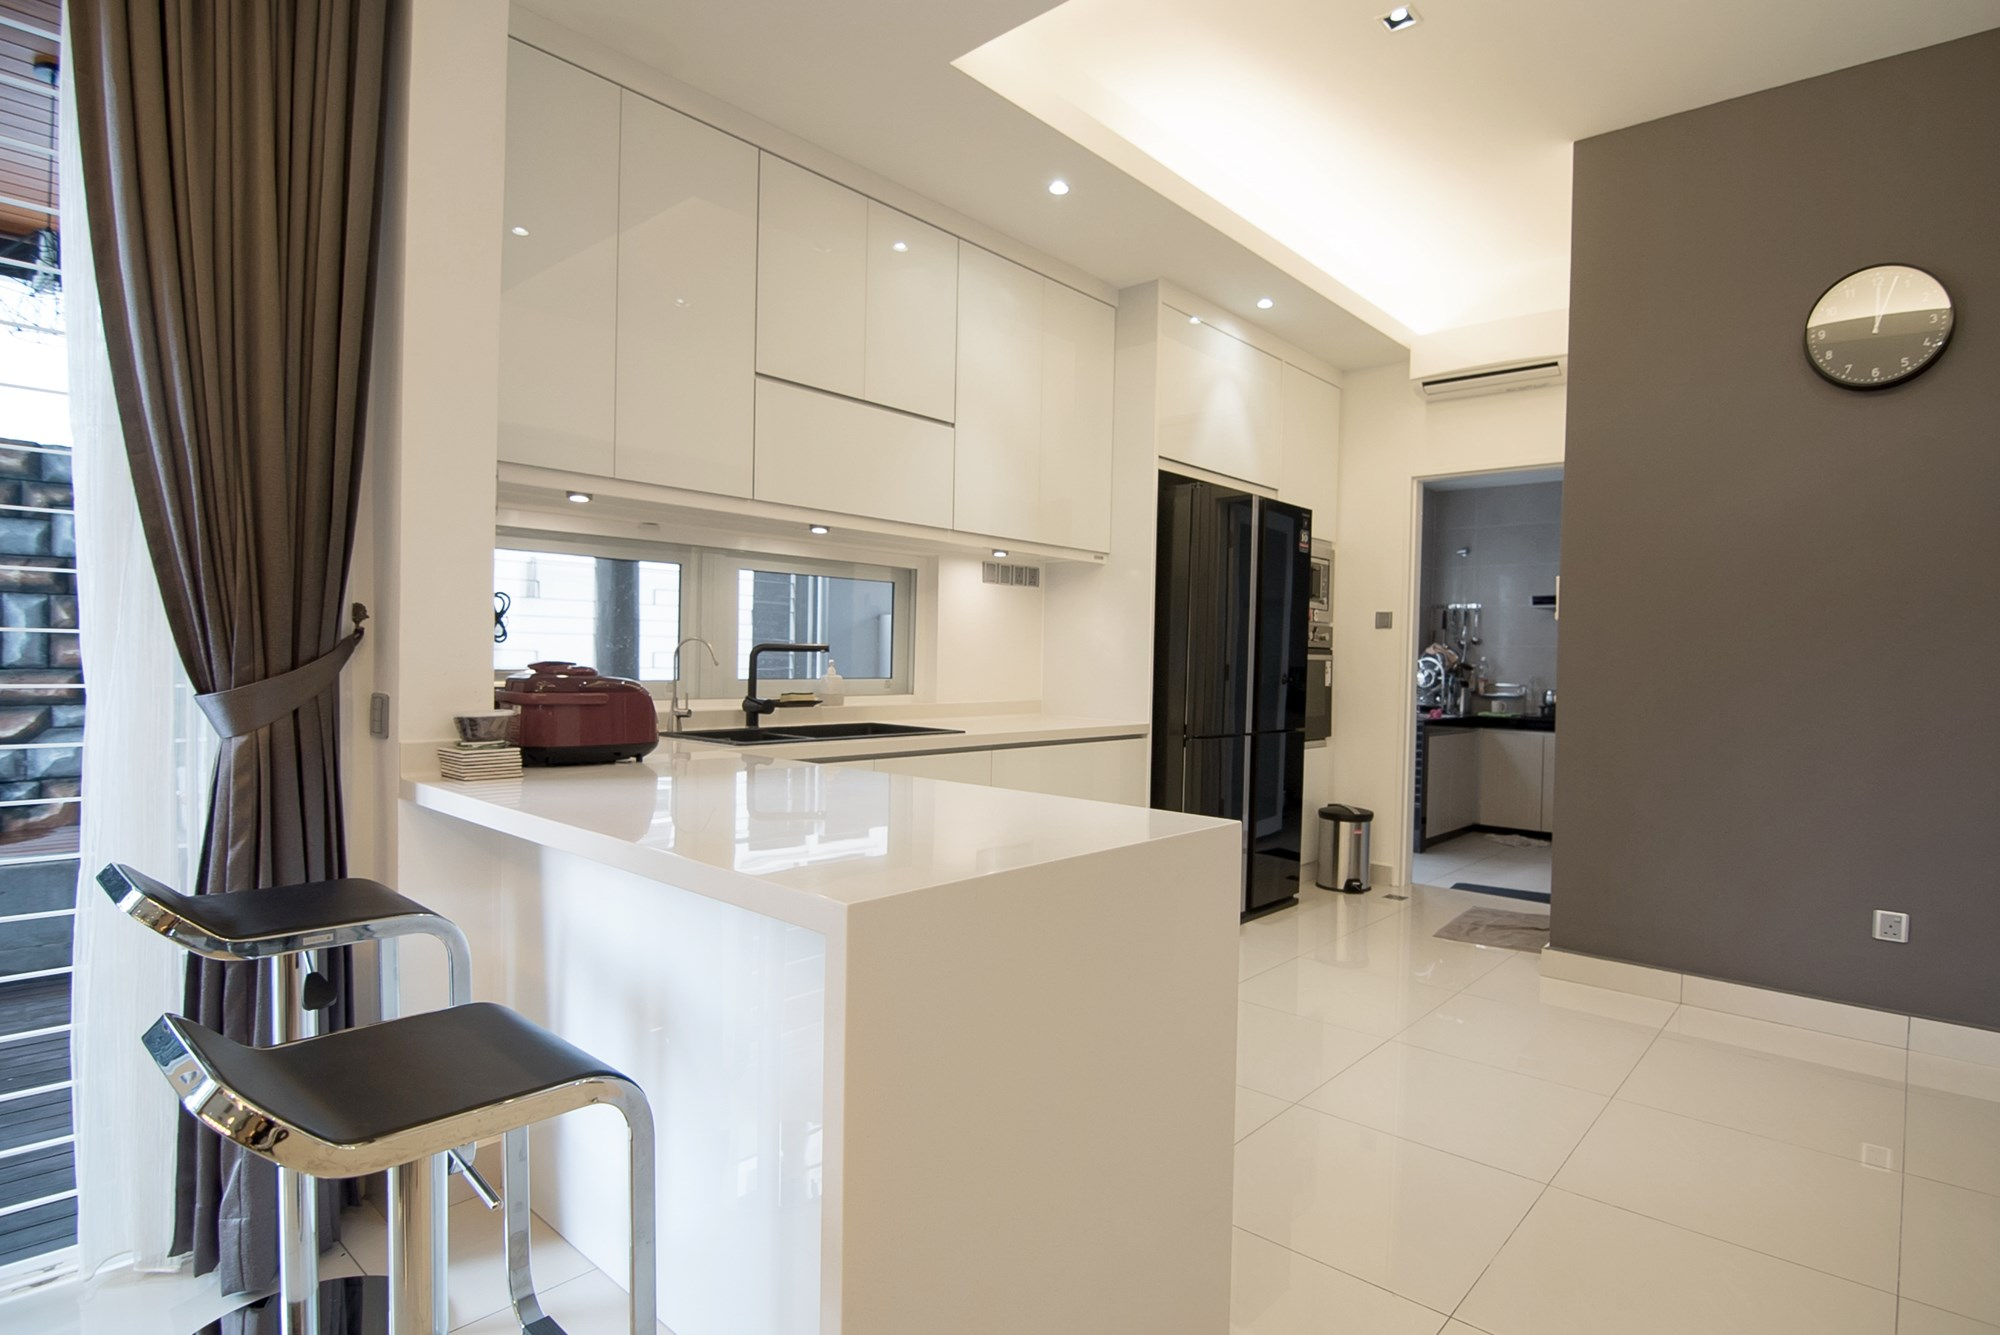 Dry Kitchen Interior Design Nu Infinity Combined White Gloss Cabinets With A Black Refrigerator Faucet And Sink